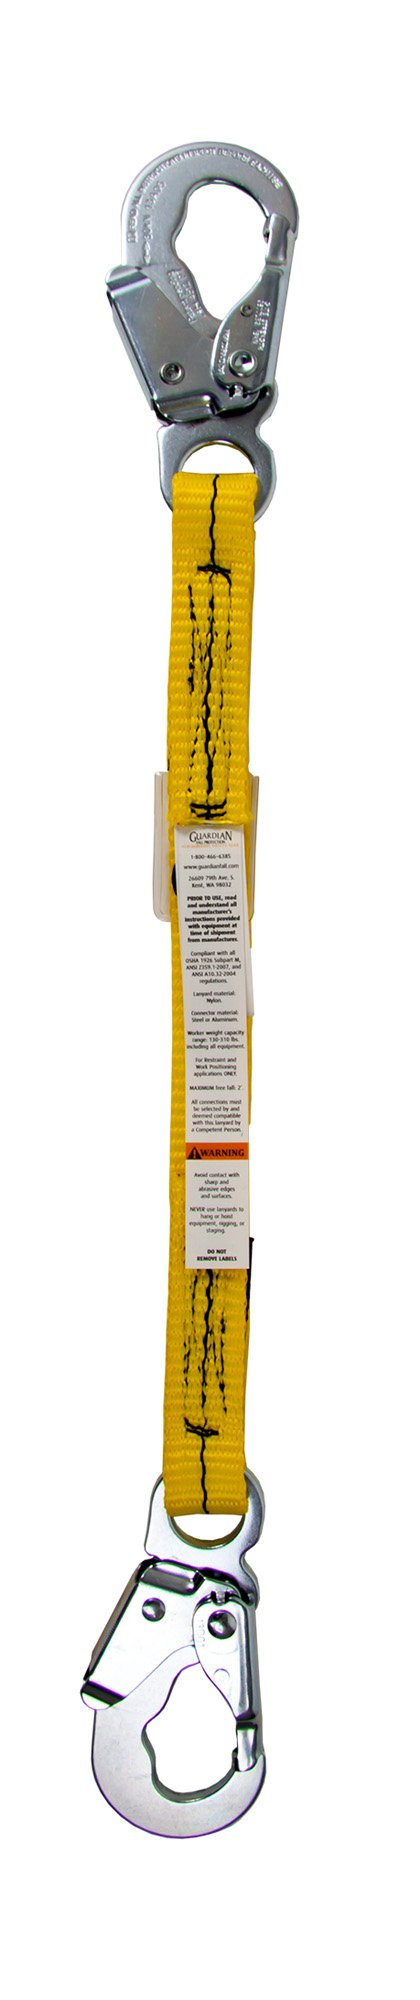 Guardian Fall Protection 01250 2-Foot Single Leg Non-Shock Absorbing Lanyard by Guardian Fall Protection